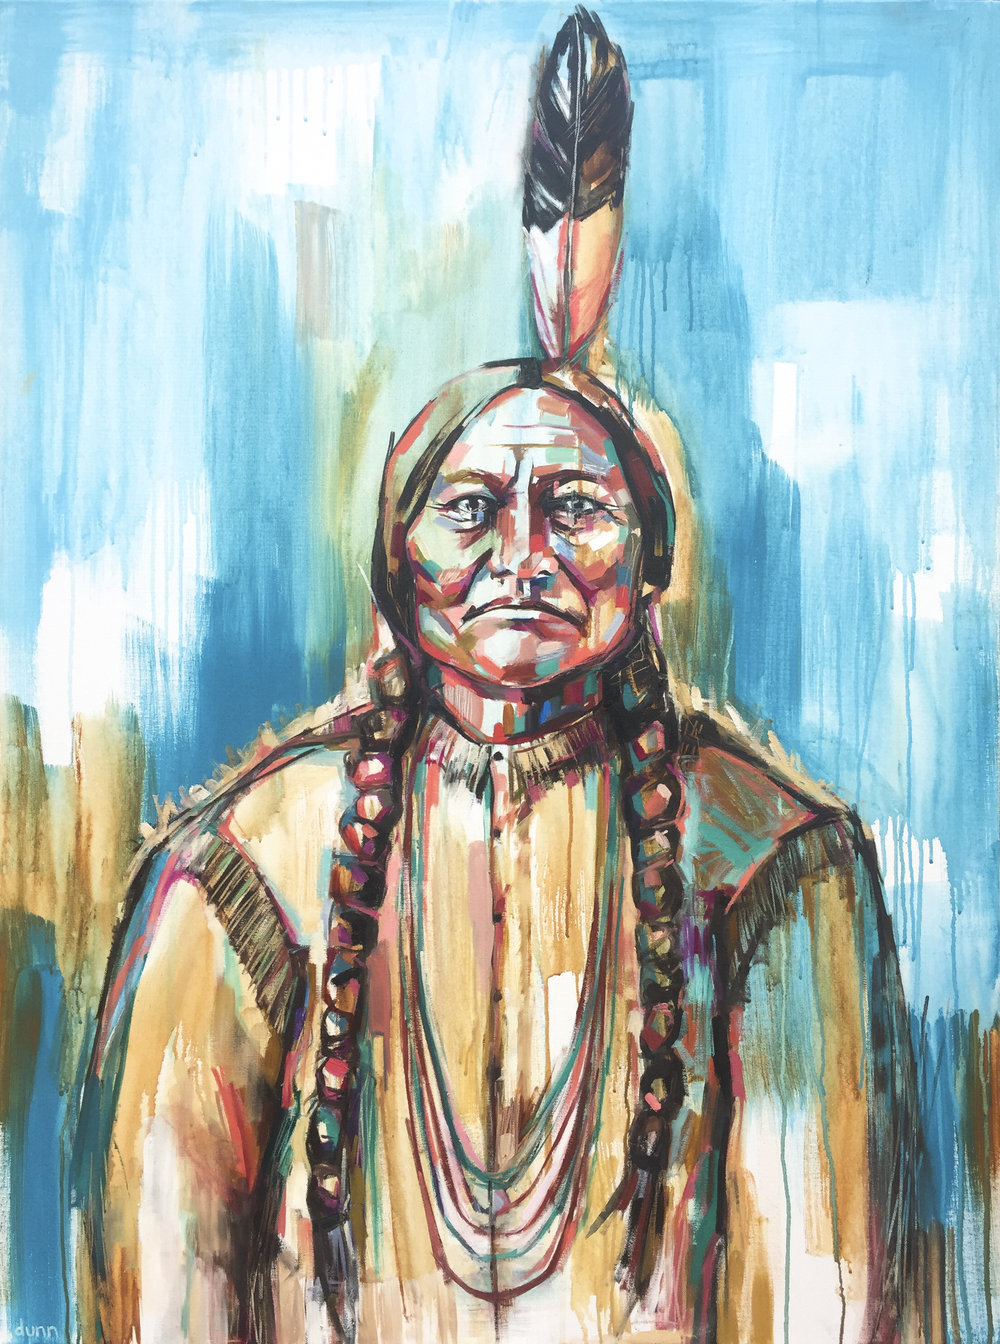 Sitting Bull Oil on canvas 30 x 40 inches $4000 8.5 x 11 inch print - $25 13 x 19 inch print - $45